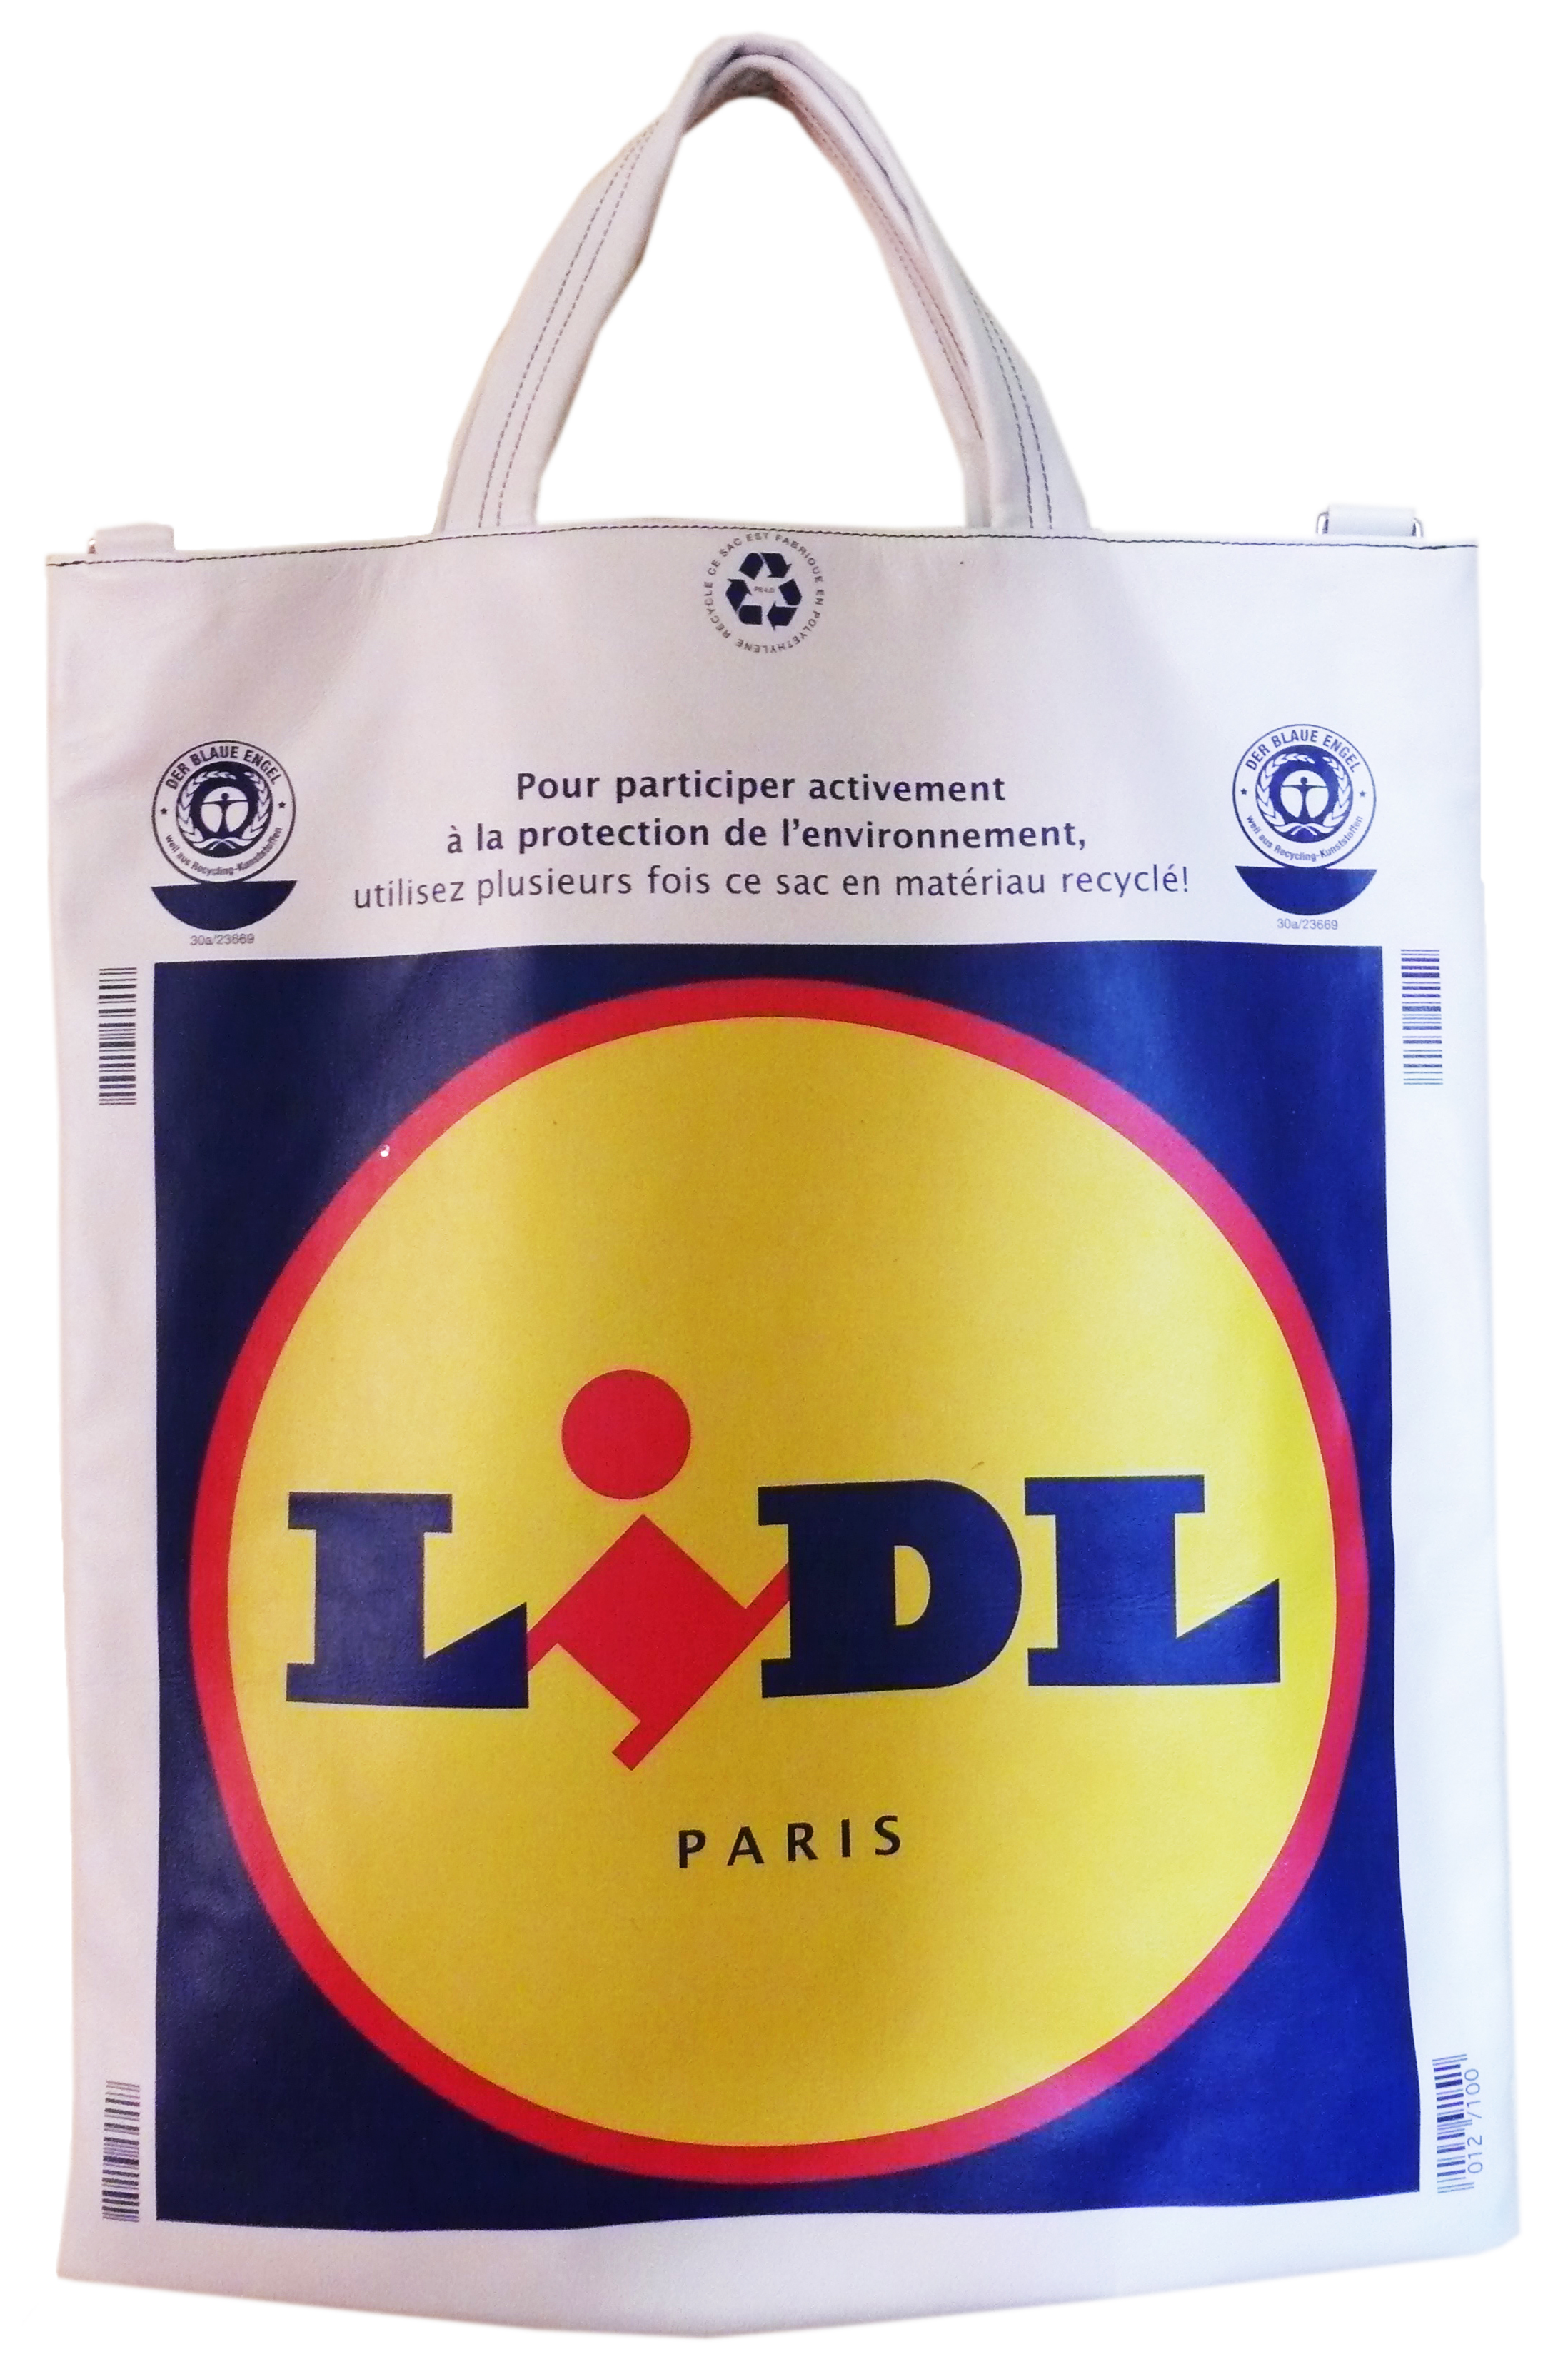 Exterieur Lidl Souvenirs From Earth Tv Channel For Film Video Art